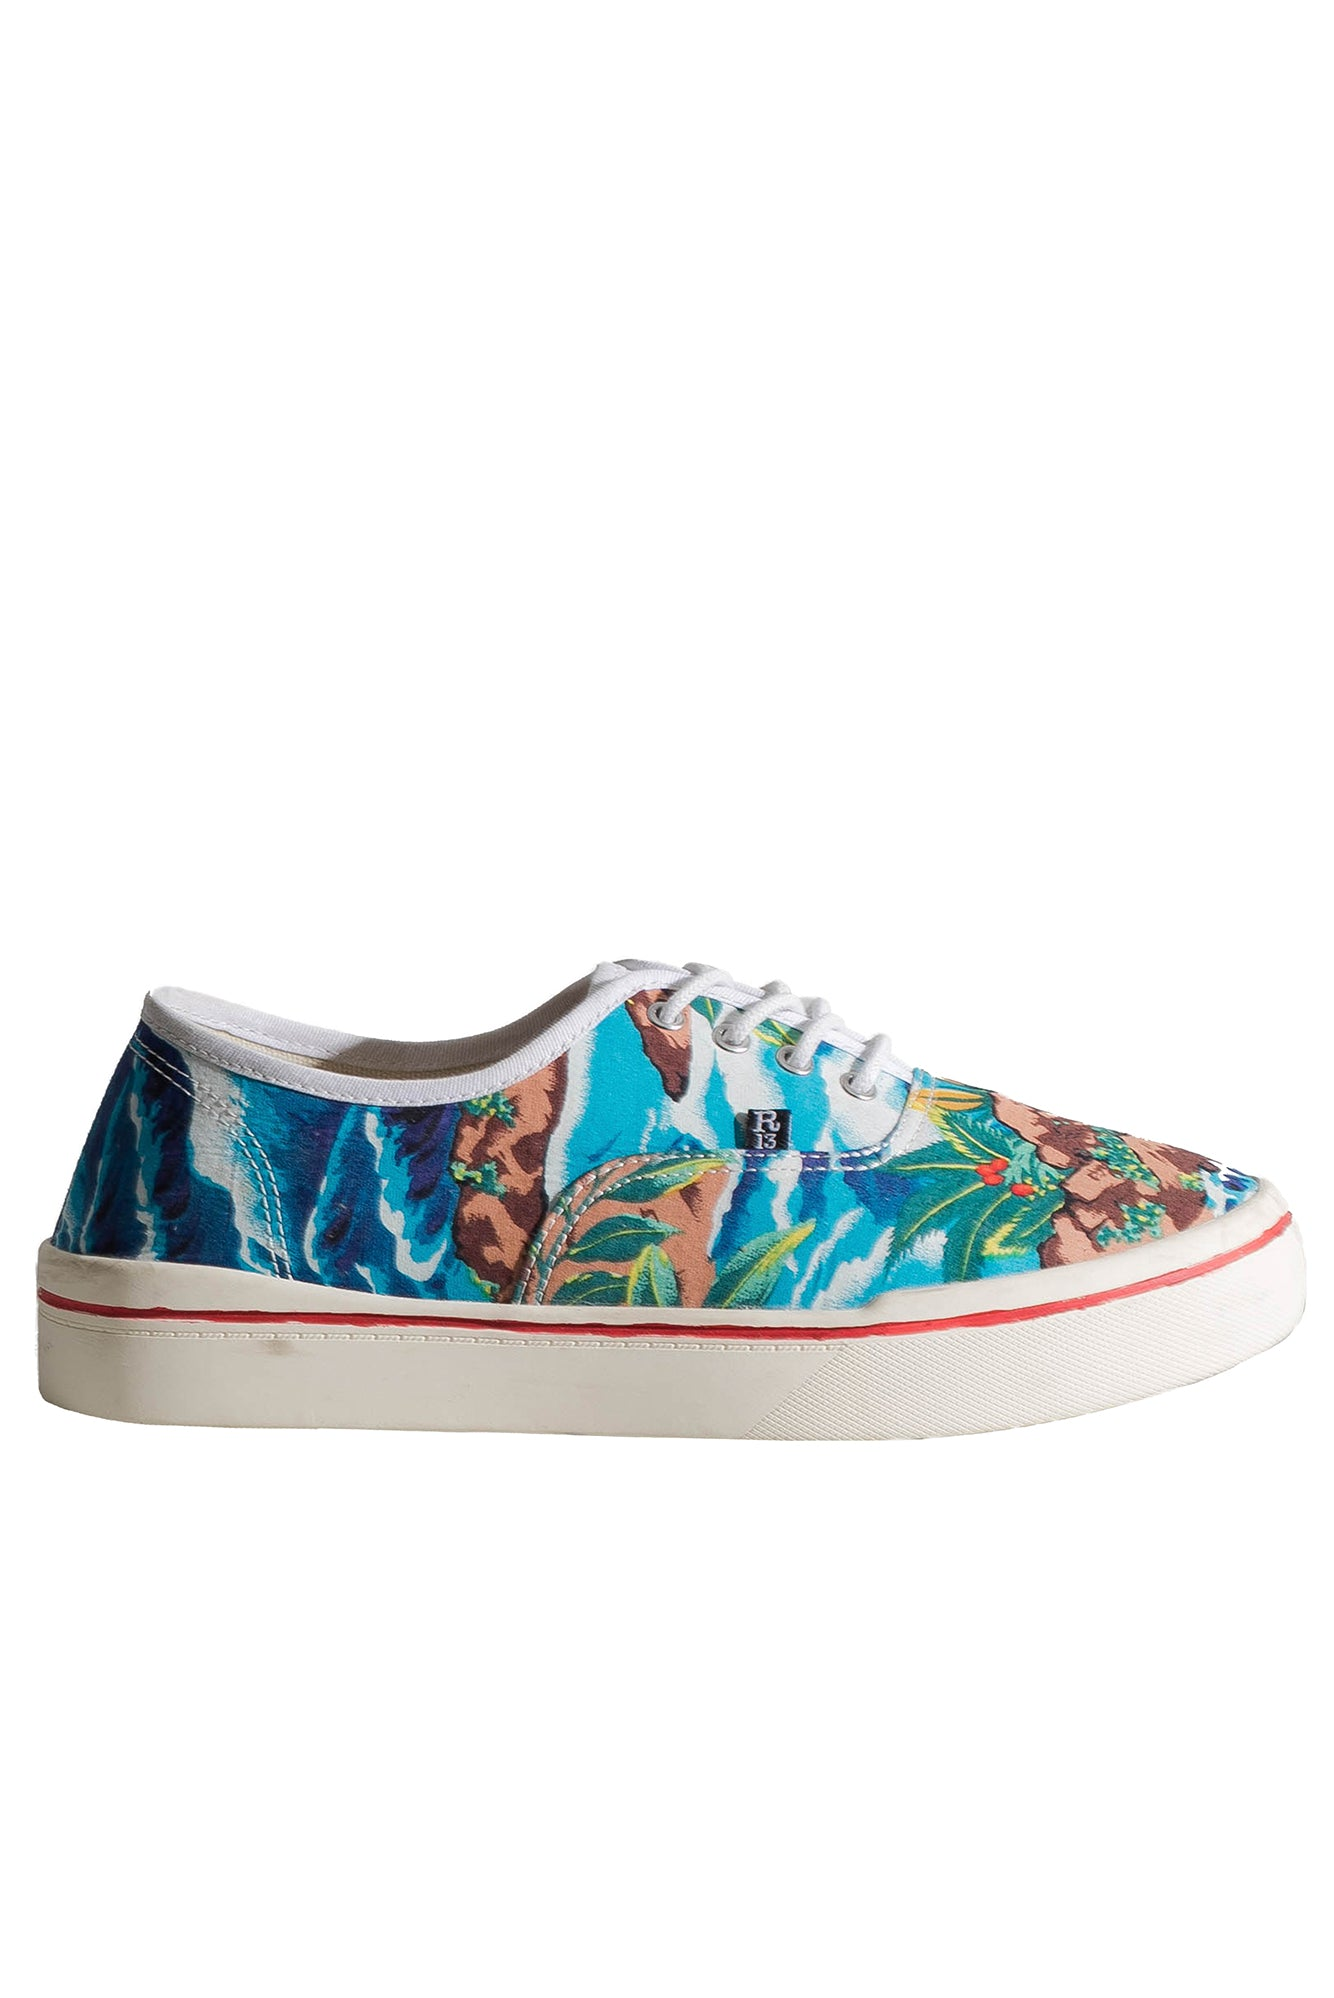 Lace Up Sneaker - Turquoise Wave